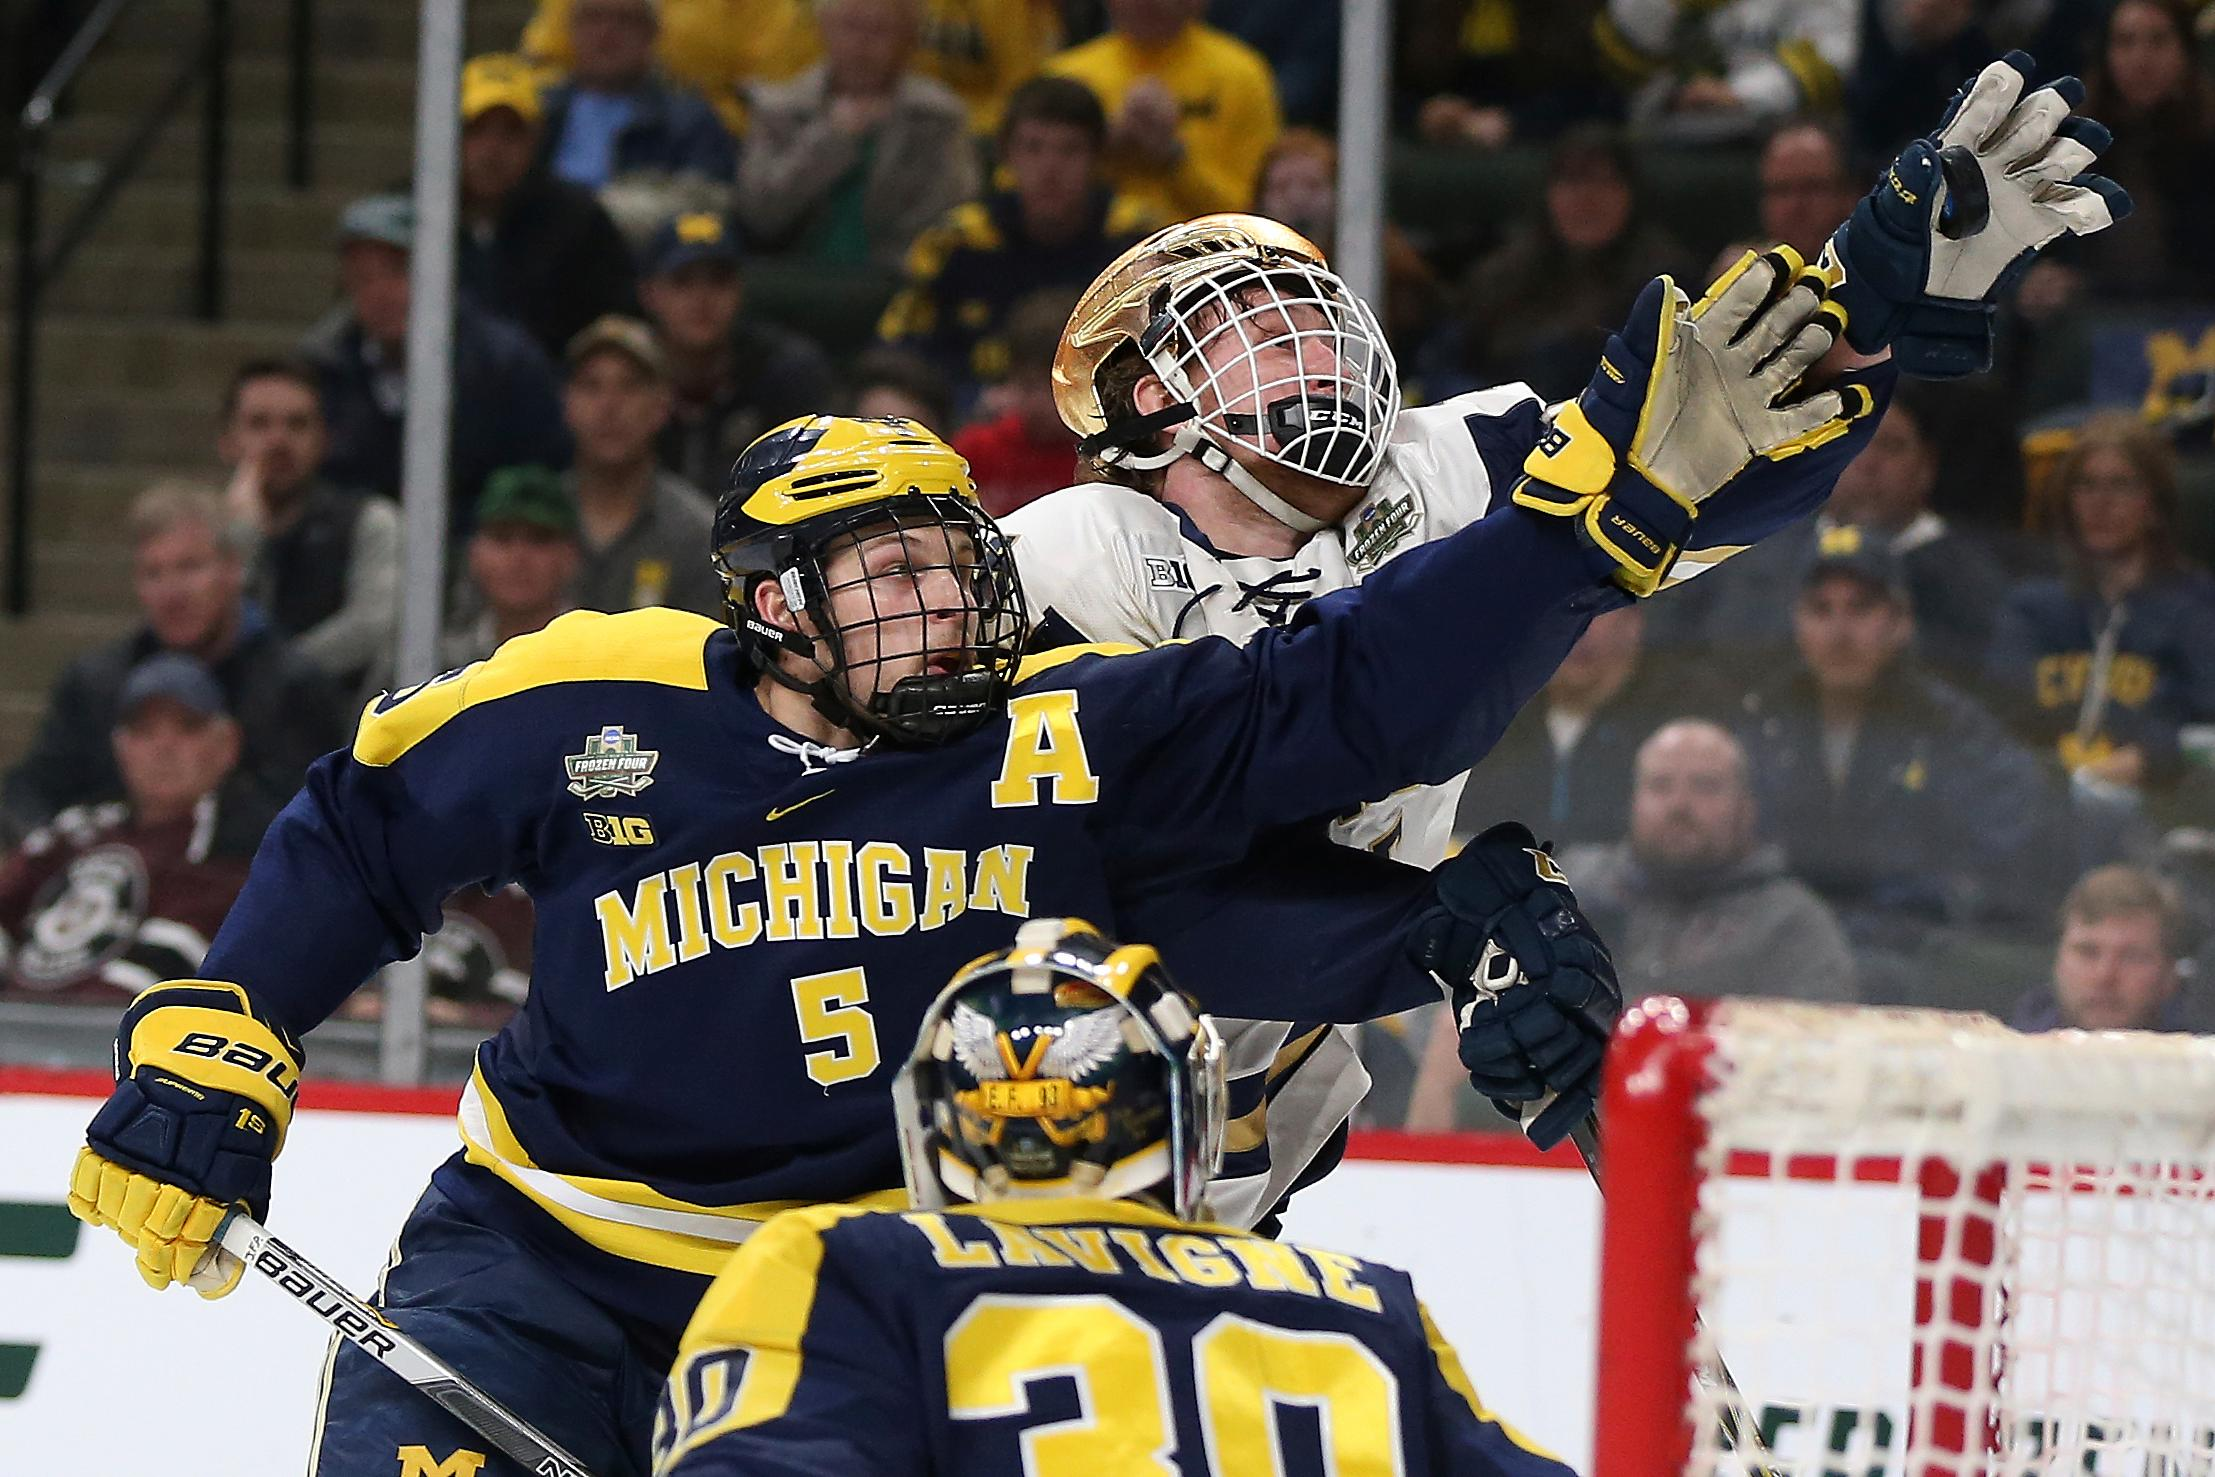 Notre Dame's Cam Morrison, right, grabs the puck out of the air next to Michigan's Griffin Luce (5) during the first period of a semifinal in the NCAA men's Frozen Four college hockey tournament Thursday, April 5, 2018, in St. Paul, Minn. (AP Photo/Stacy Bengs)